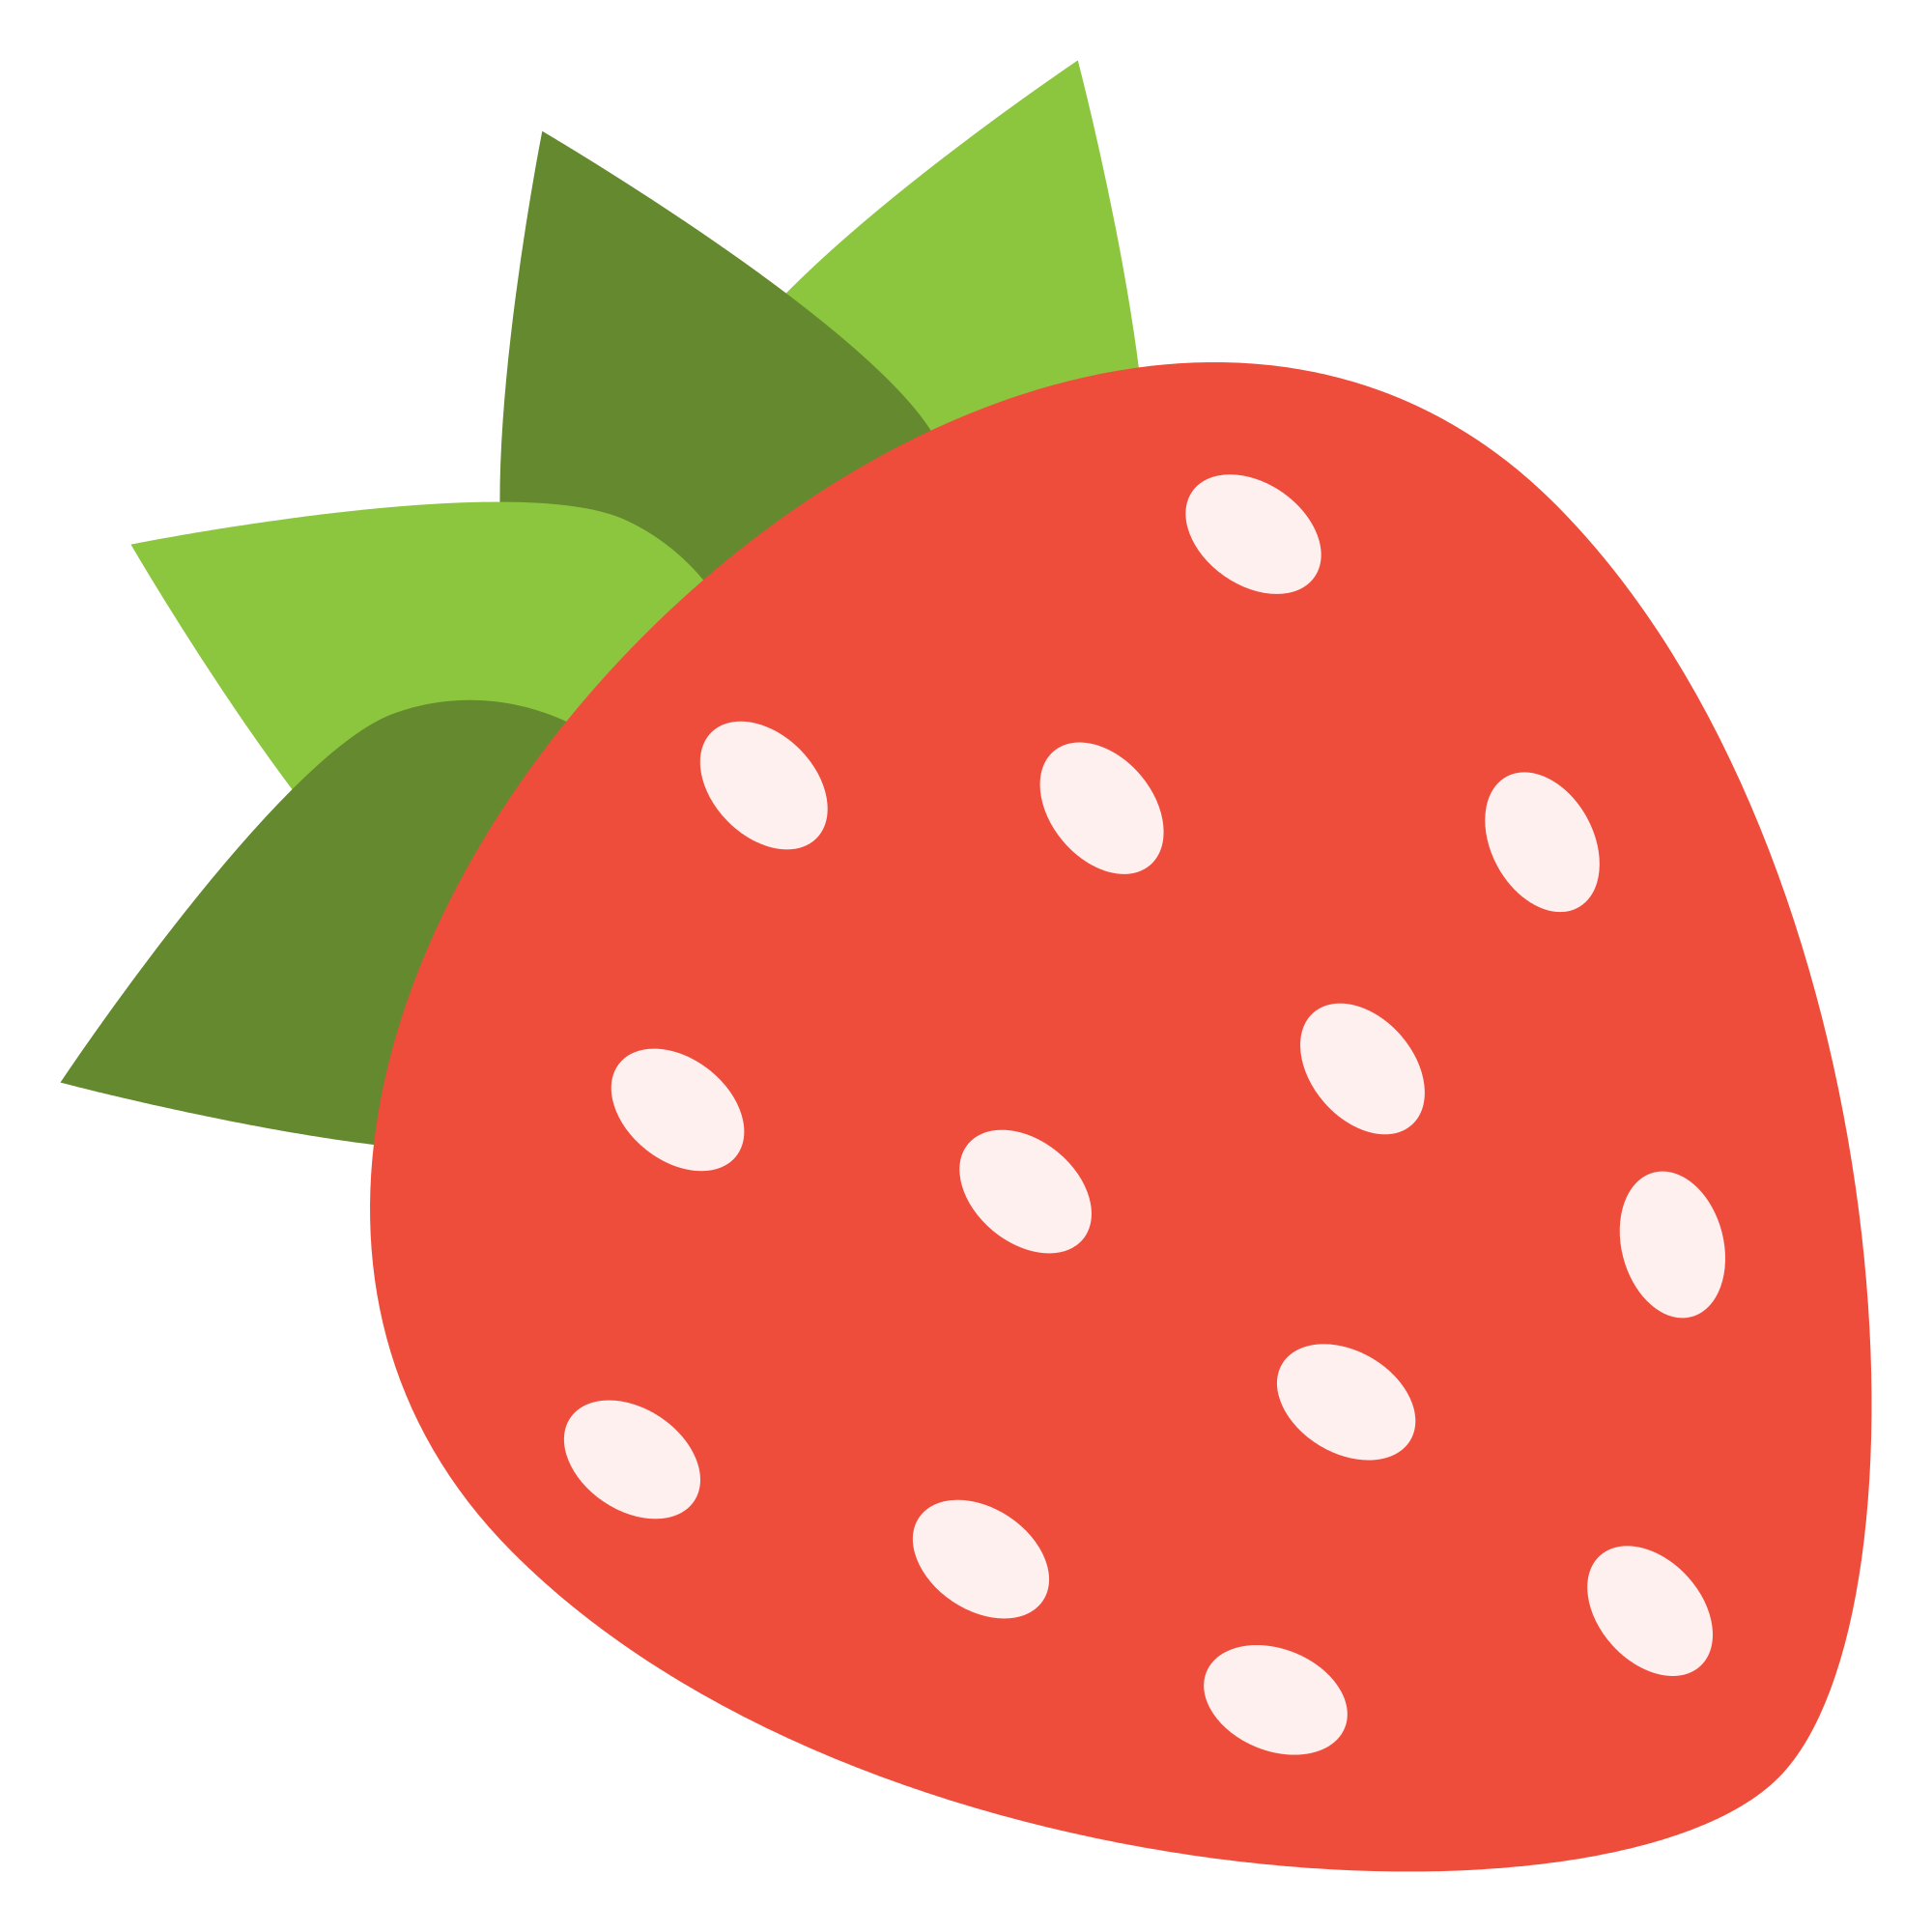 Strawberry svg #18, Download drawings